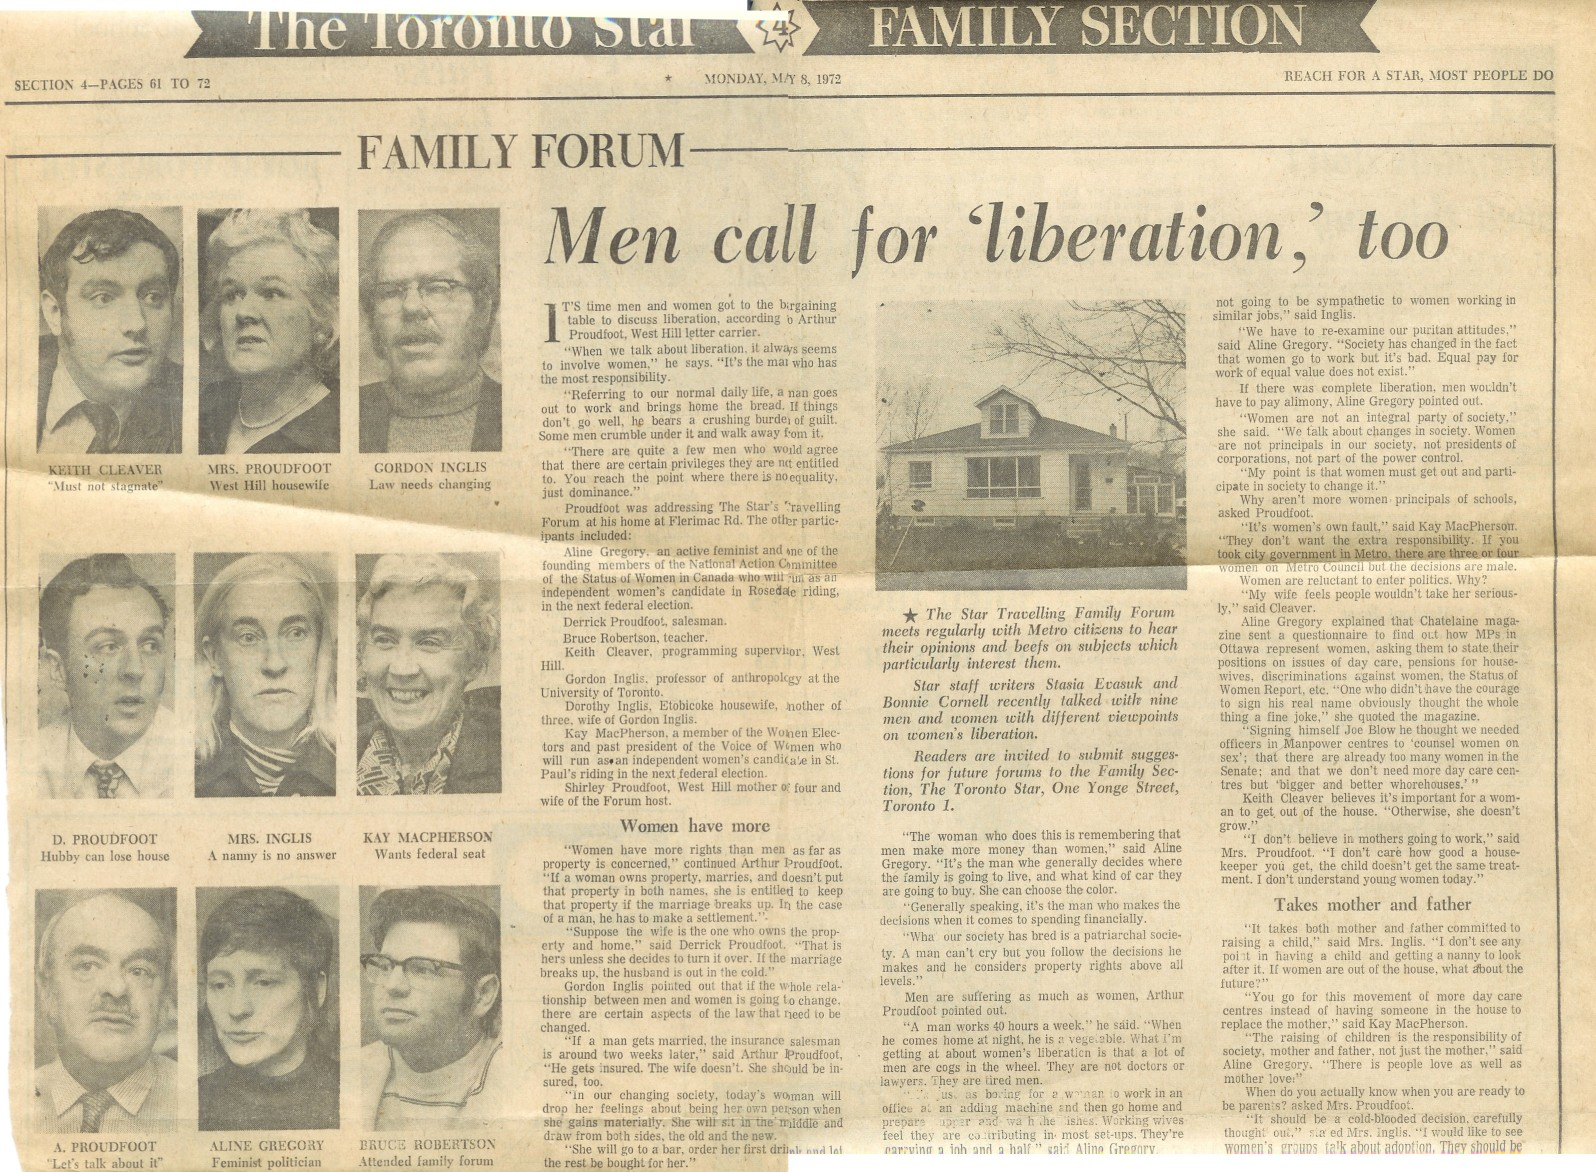 Family Forum - Men call for liberation too - Toronto Star, May 8, 1972